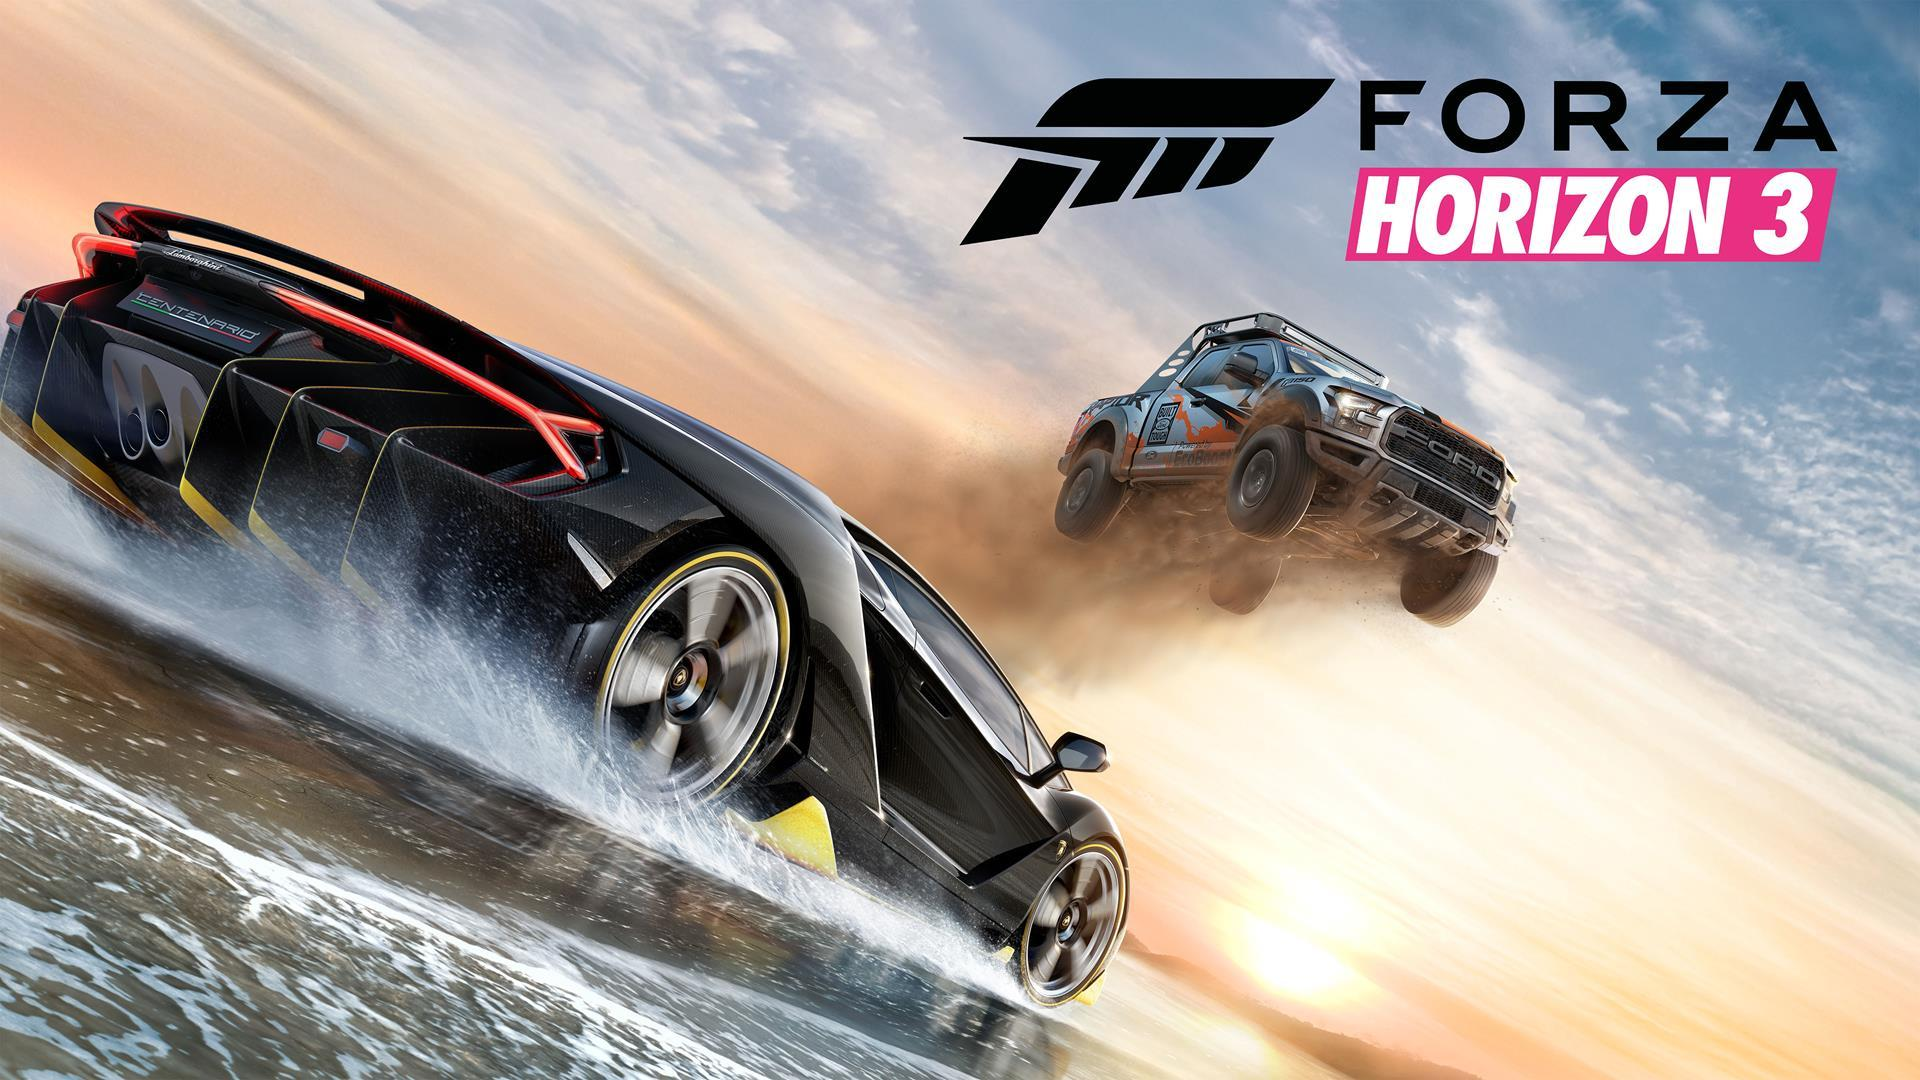 Via https://assets.vg247.com/current//2016/06/forza_horizon_3_main_art_horizontal_big_1.jpg